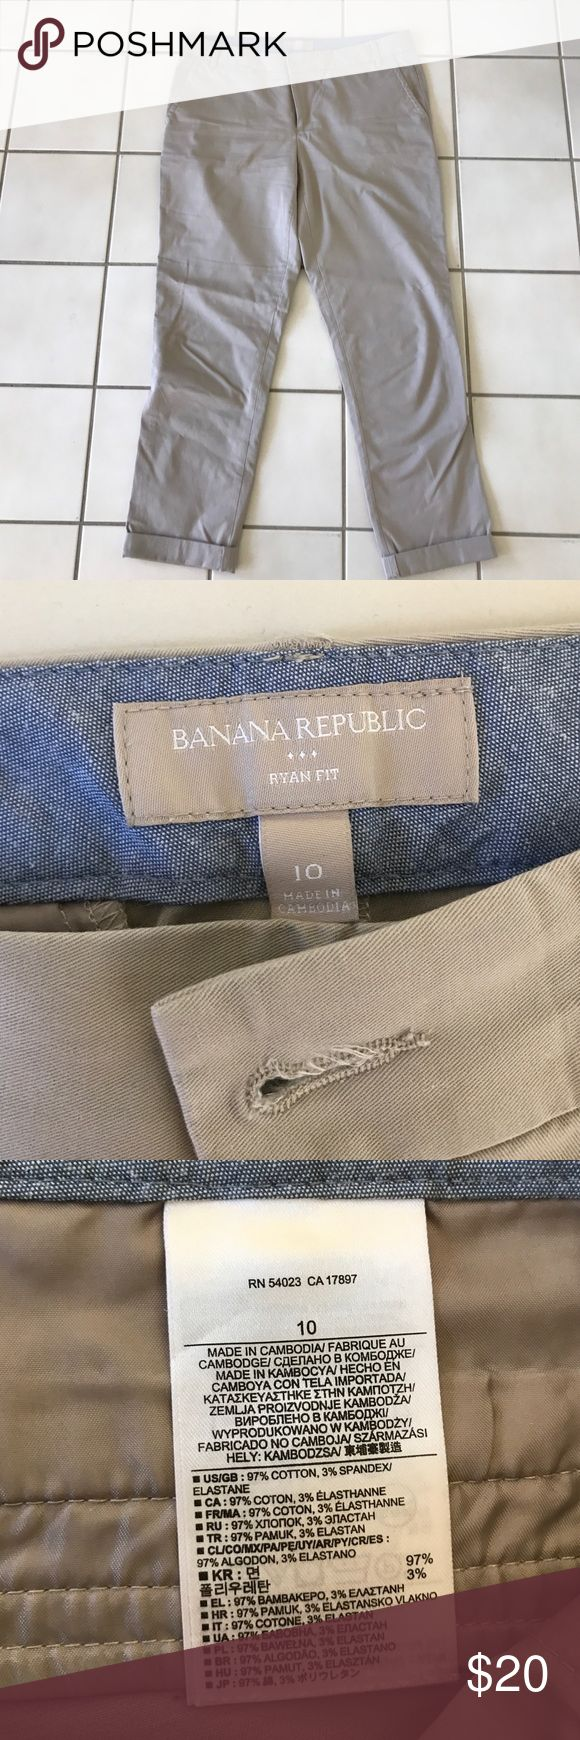 Banana Republic Ryan Fit Rolled Pant Lightly worn kaki capri from Banana Republic Banana Republic Pants Capris